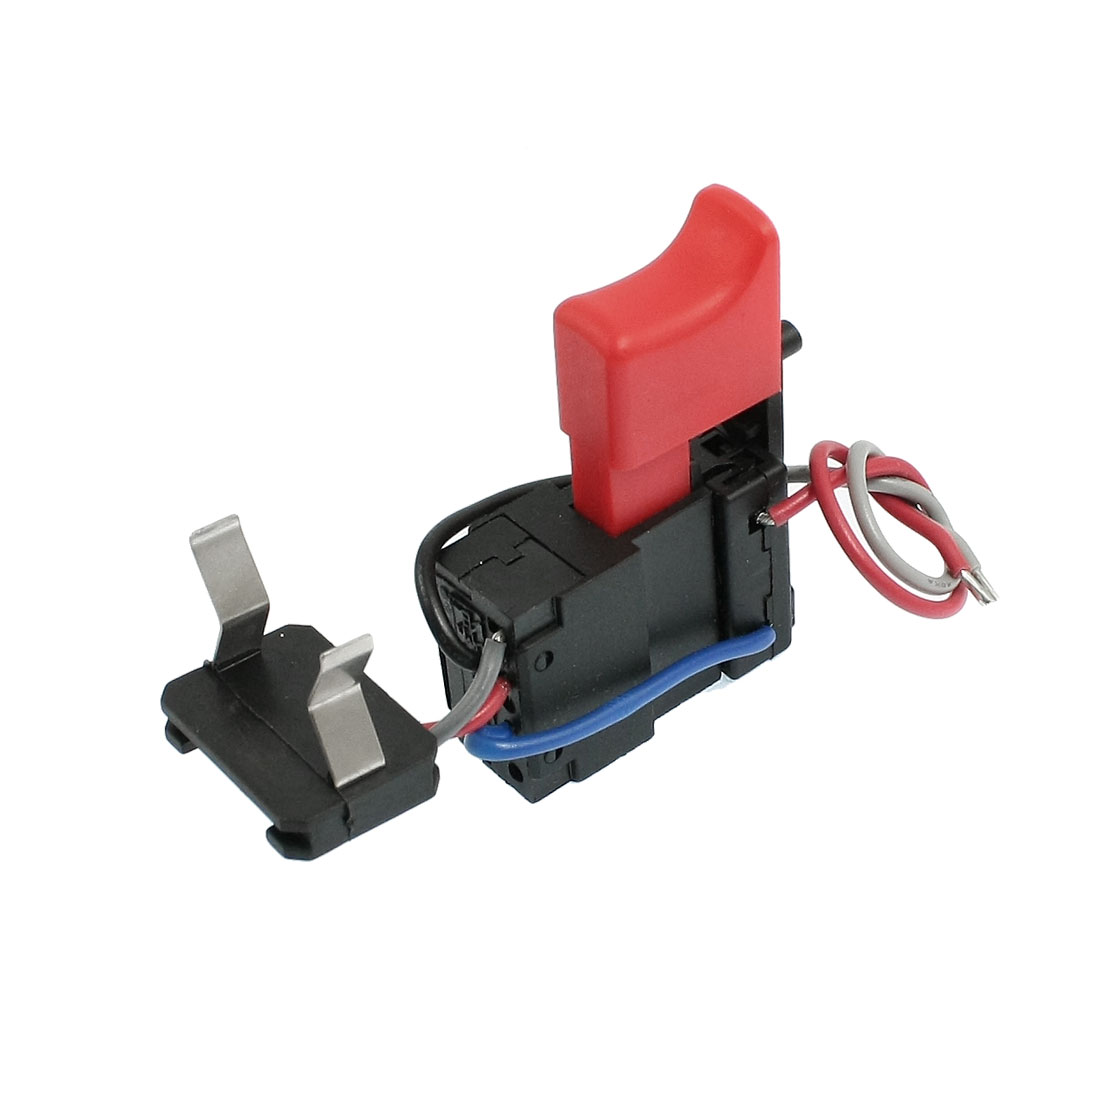 Black Red 15V 12A Electric Drill Hammer Tool Charge Speed Control Switch